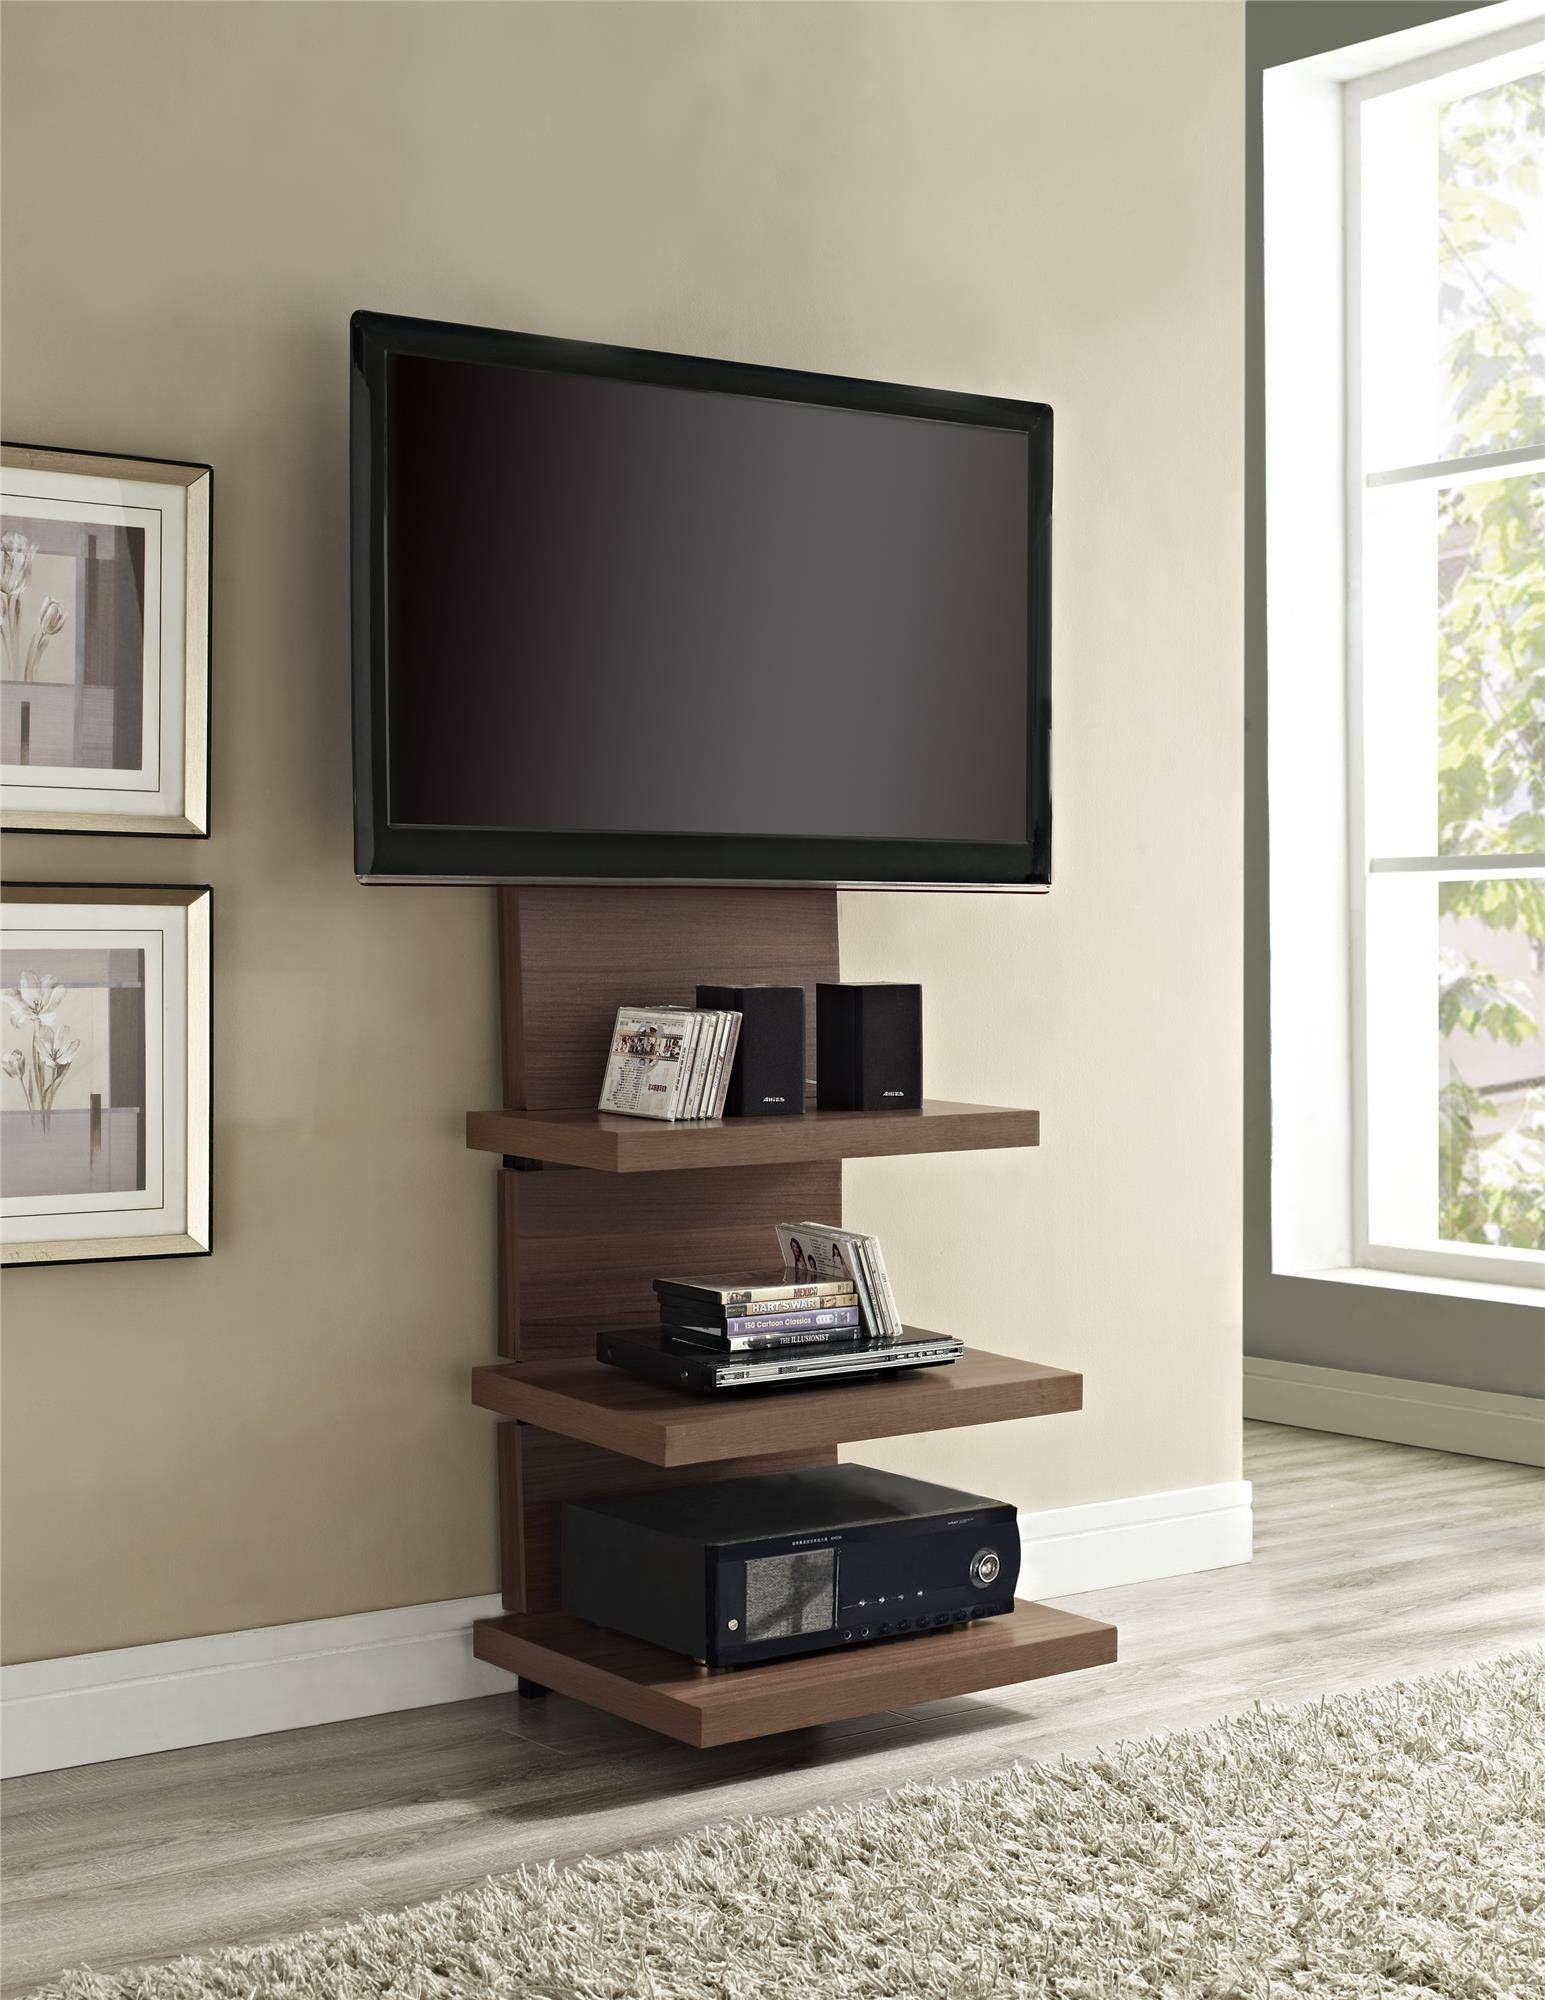 Cool Custom Modern Vertical Wood Tv Stands With Floating Display In Cool Tv Stands (View 7 of 15)